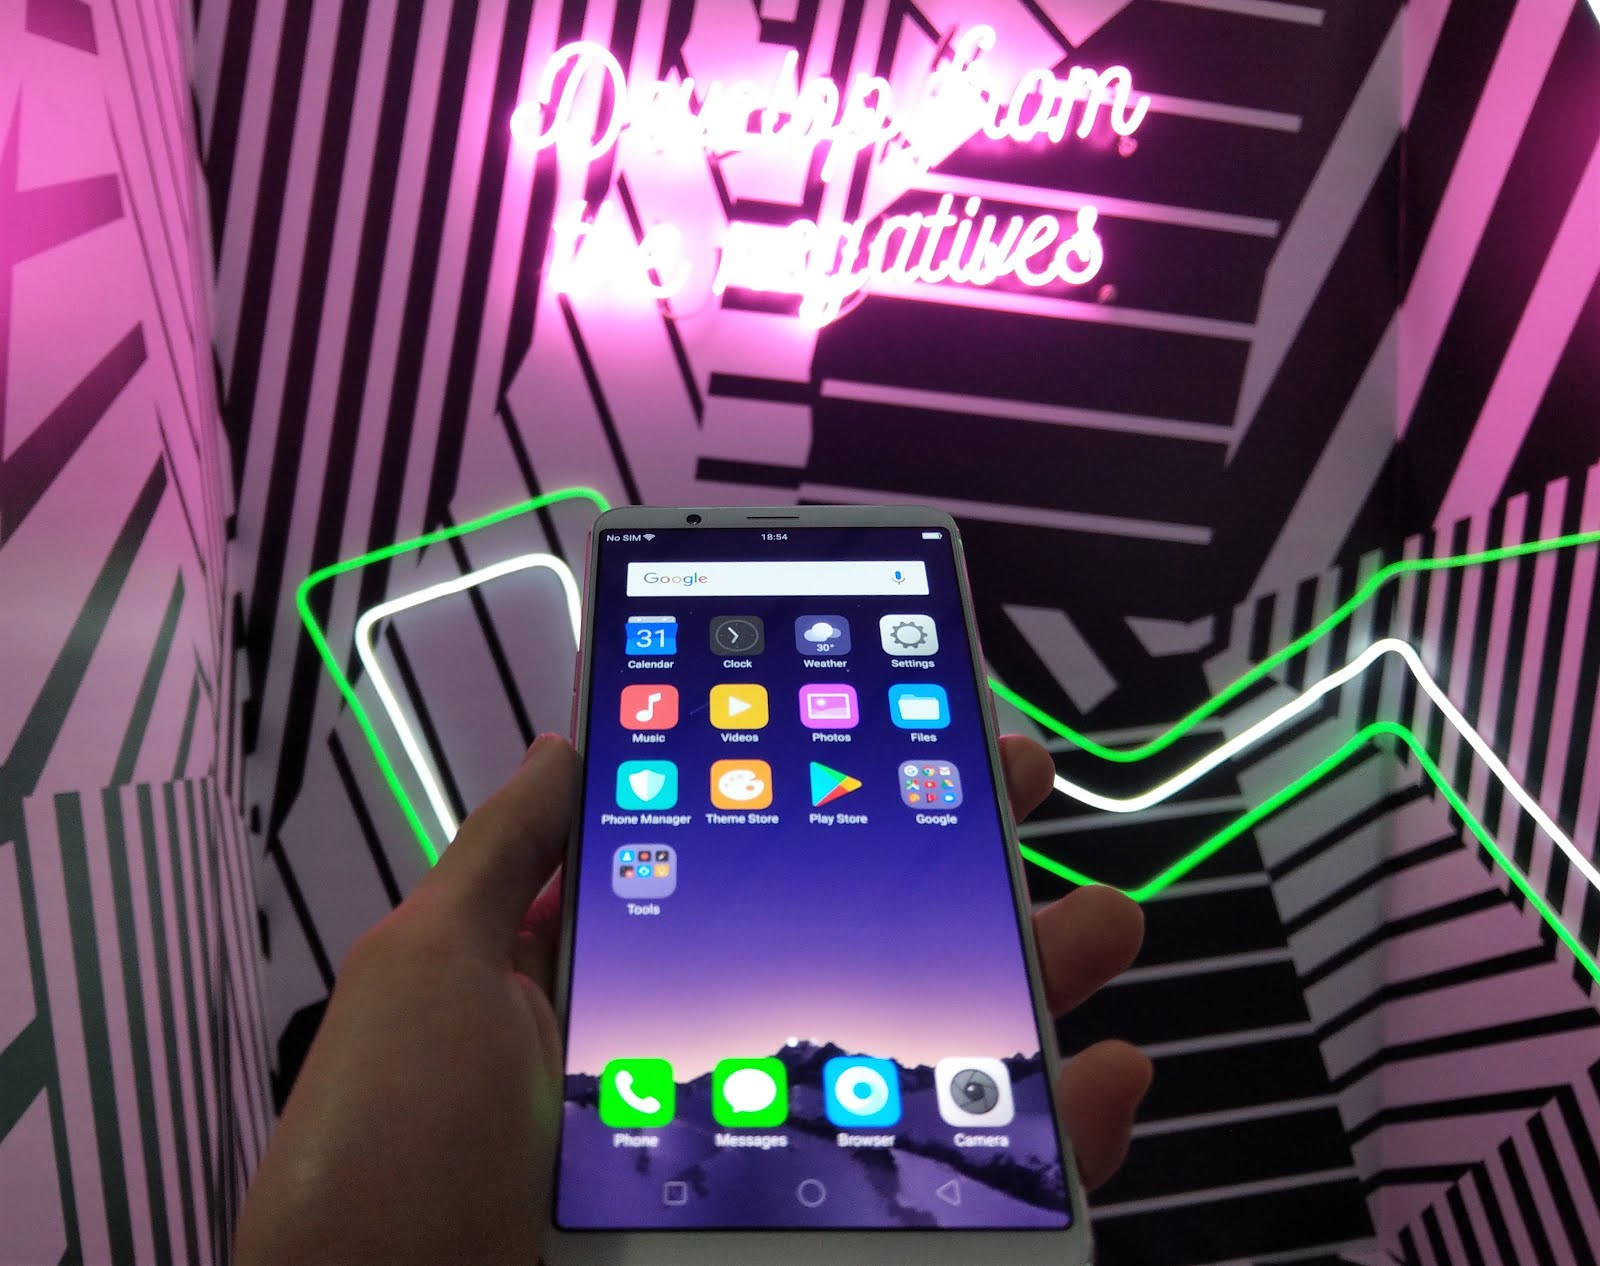 OPPO launches R11s and R11s Plus in Singapore! - The Tech